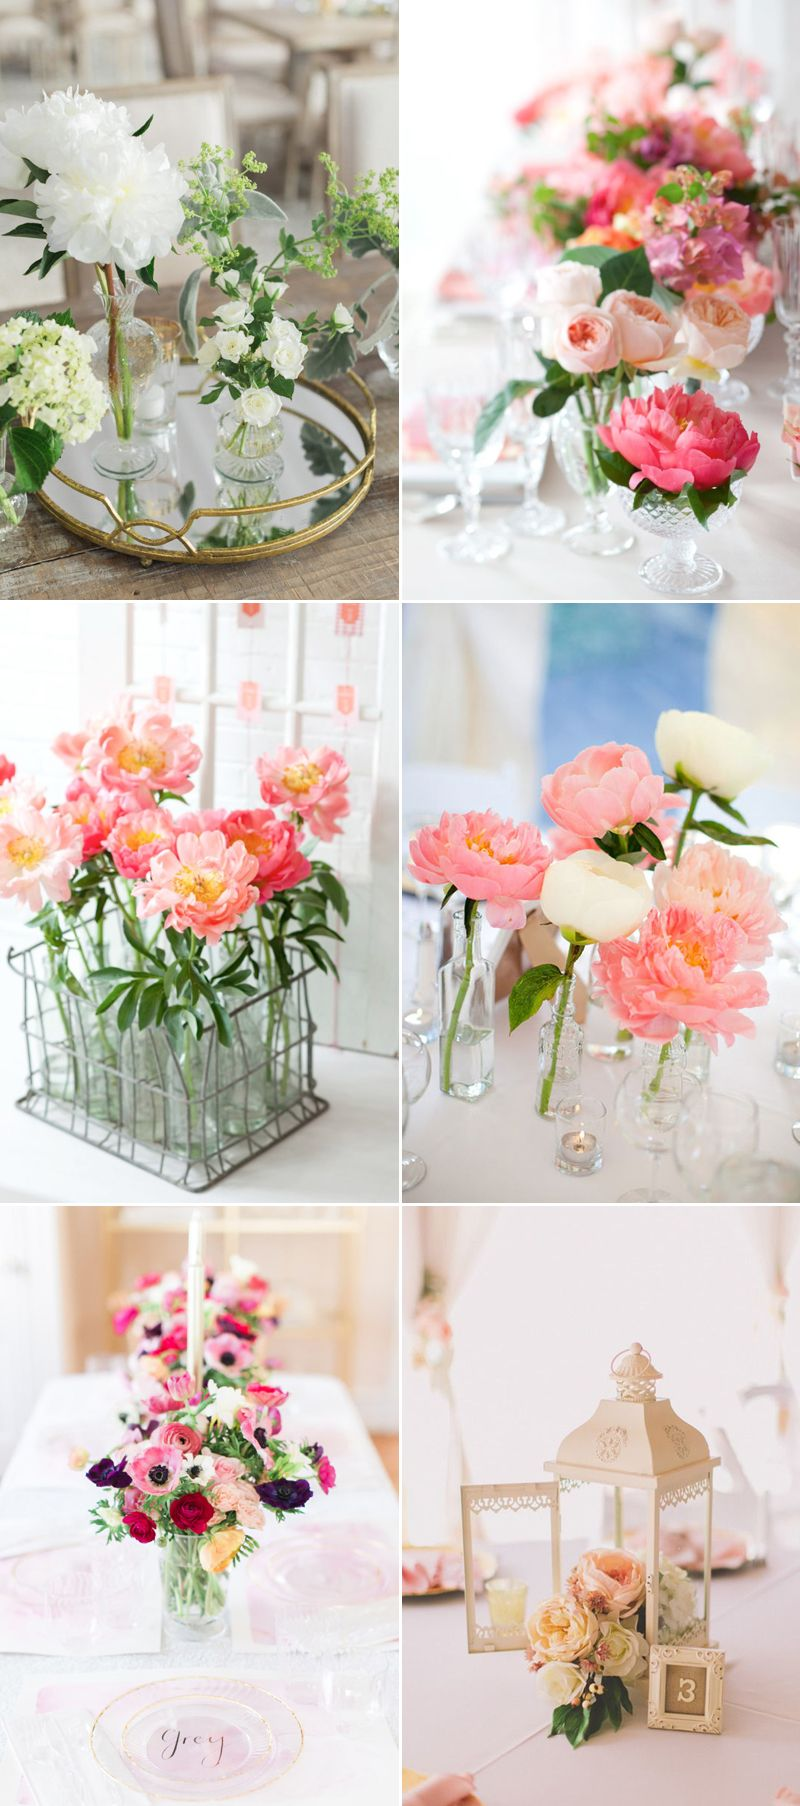 22 Romantic Fresh Flower Centerpiece Ideas For Spring Weddings ...